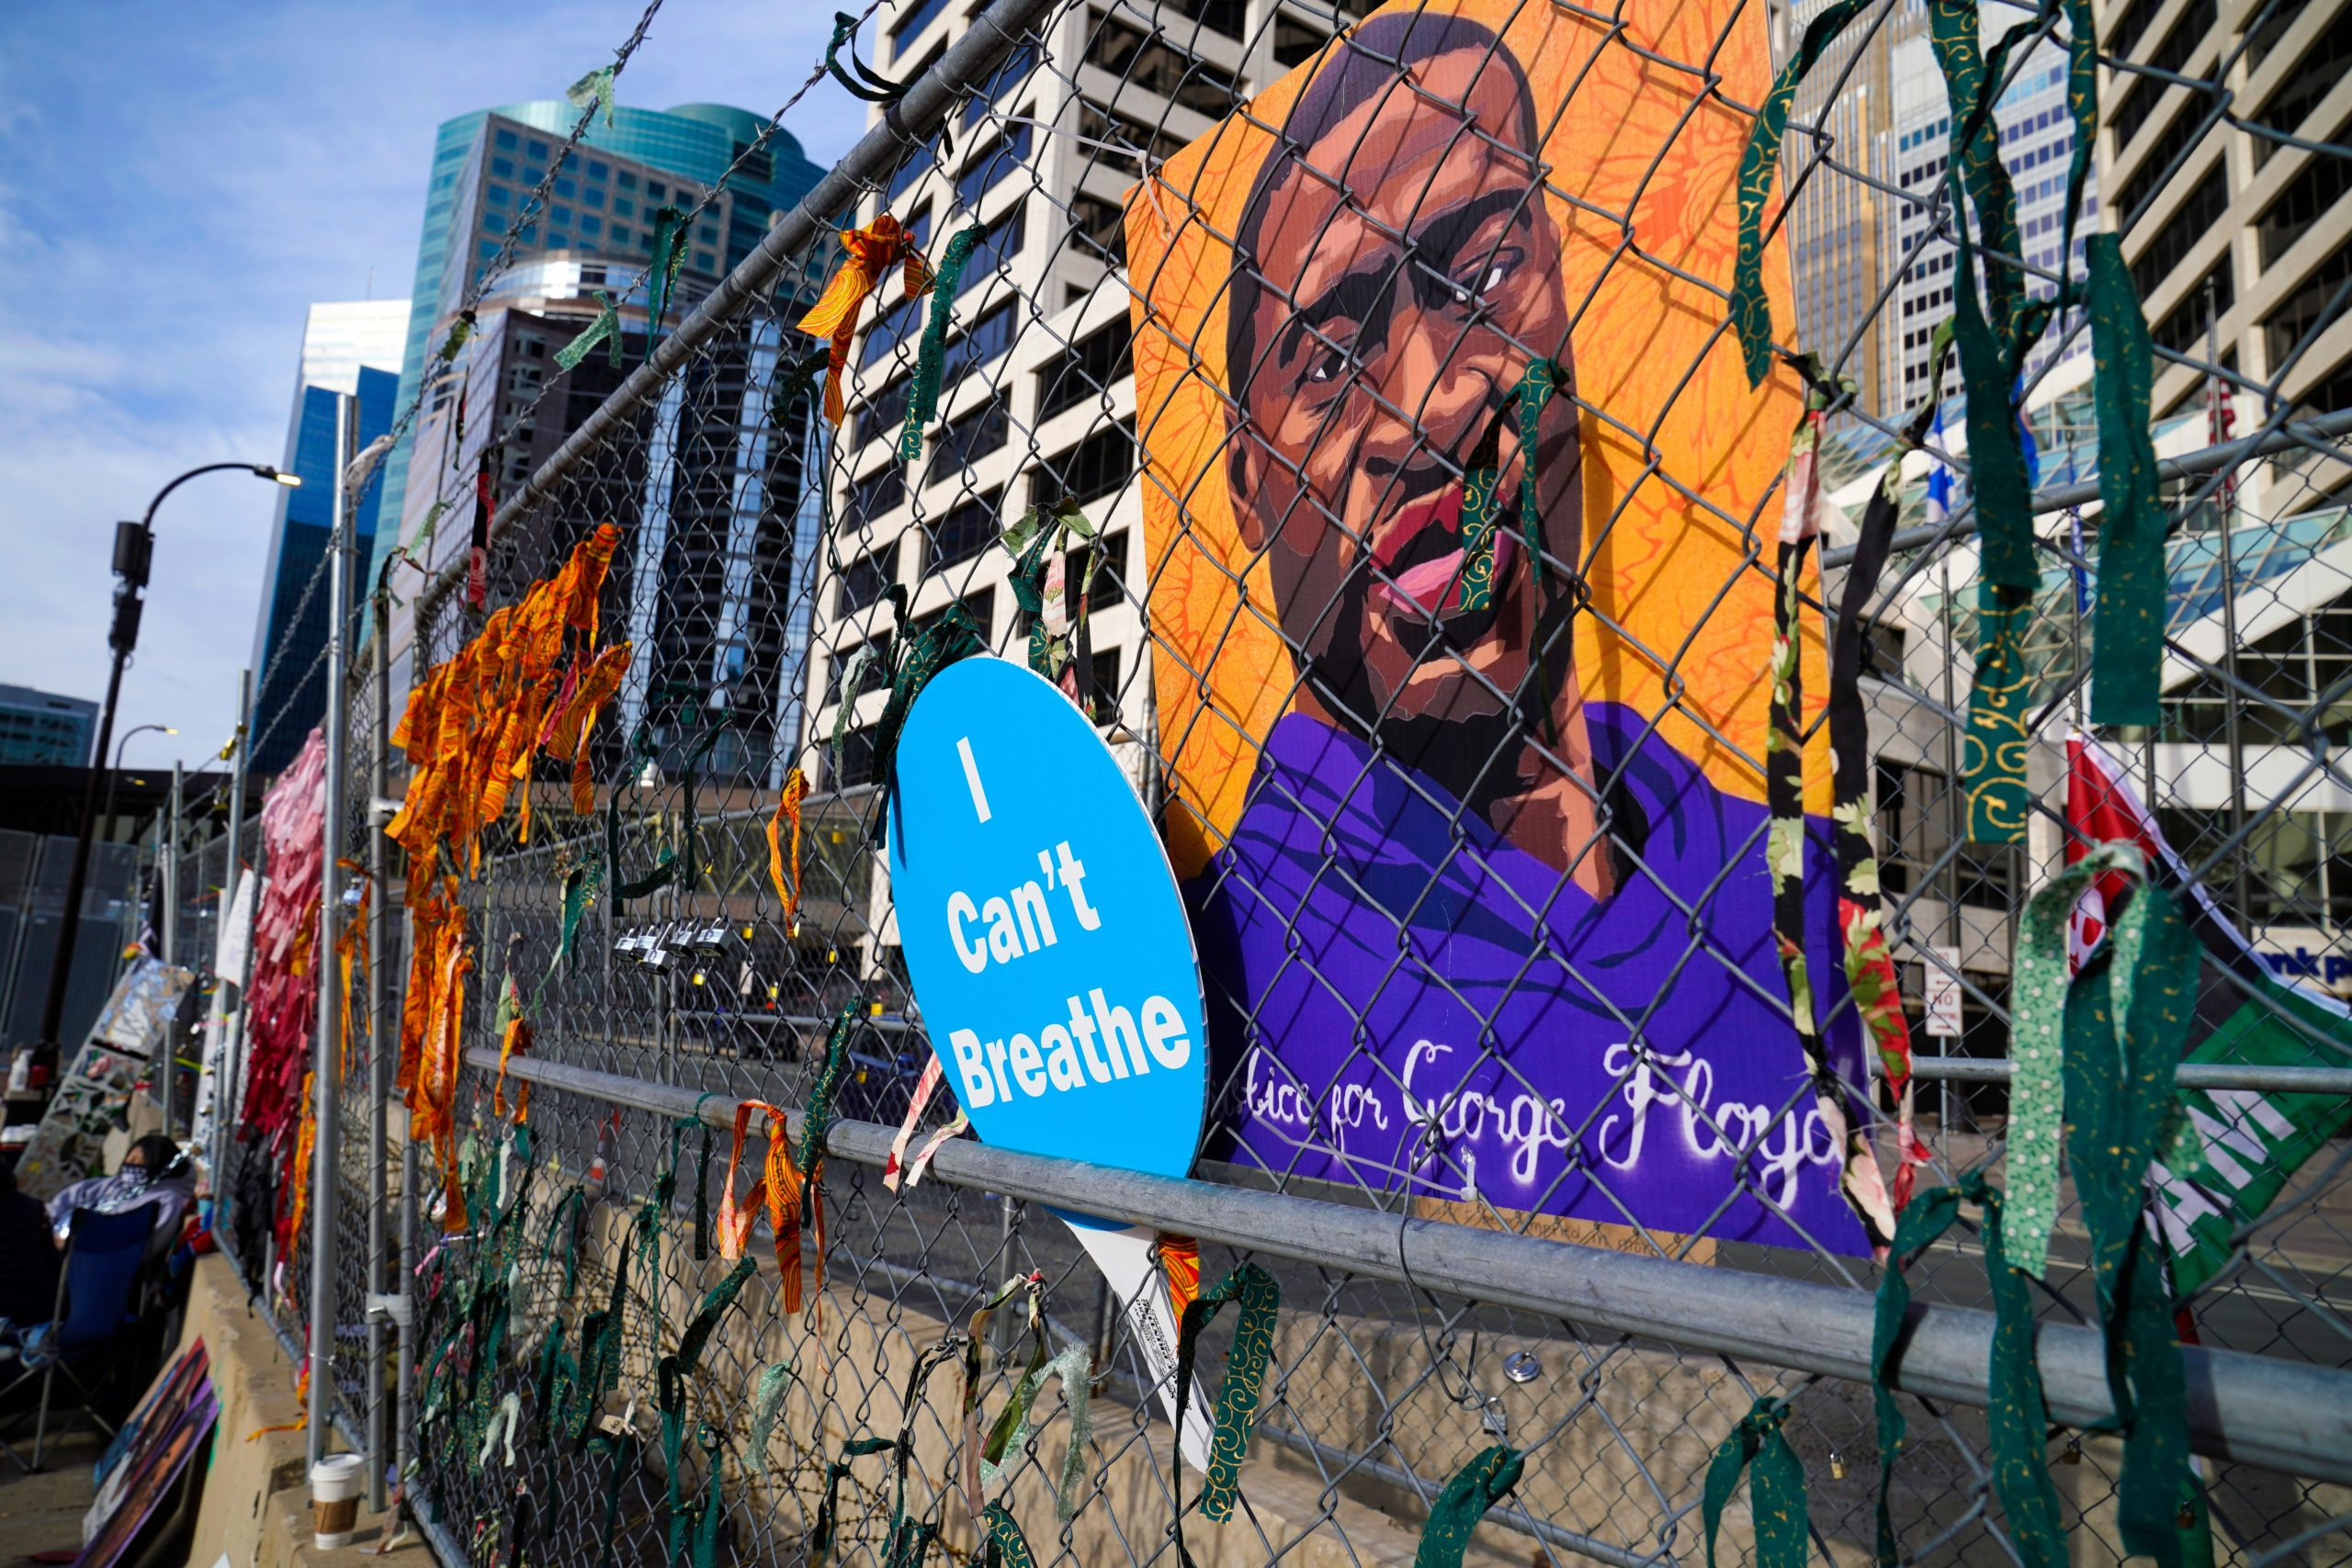 A picture of George Floyd hangs on a fence outside the Hennepin County Government Center, Tuesday, March 30, 2021, in Minneapolis where the trial for former Minneapolis police officer Derek Chauvin continues. Chauvin is charged with murder in the death of Floyd during an arrest last May in Minneapolis. (AP Photo/Jim Mone)